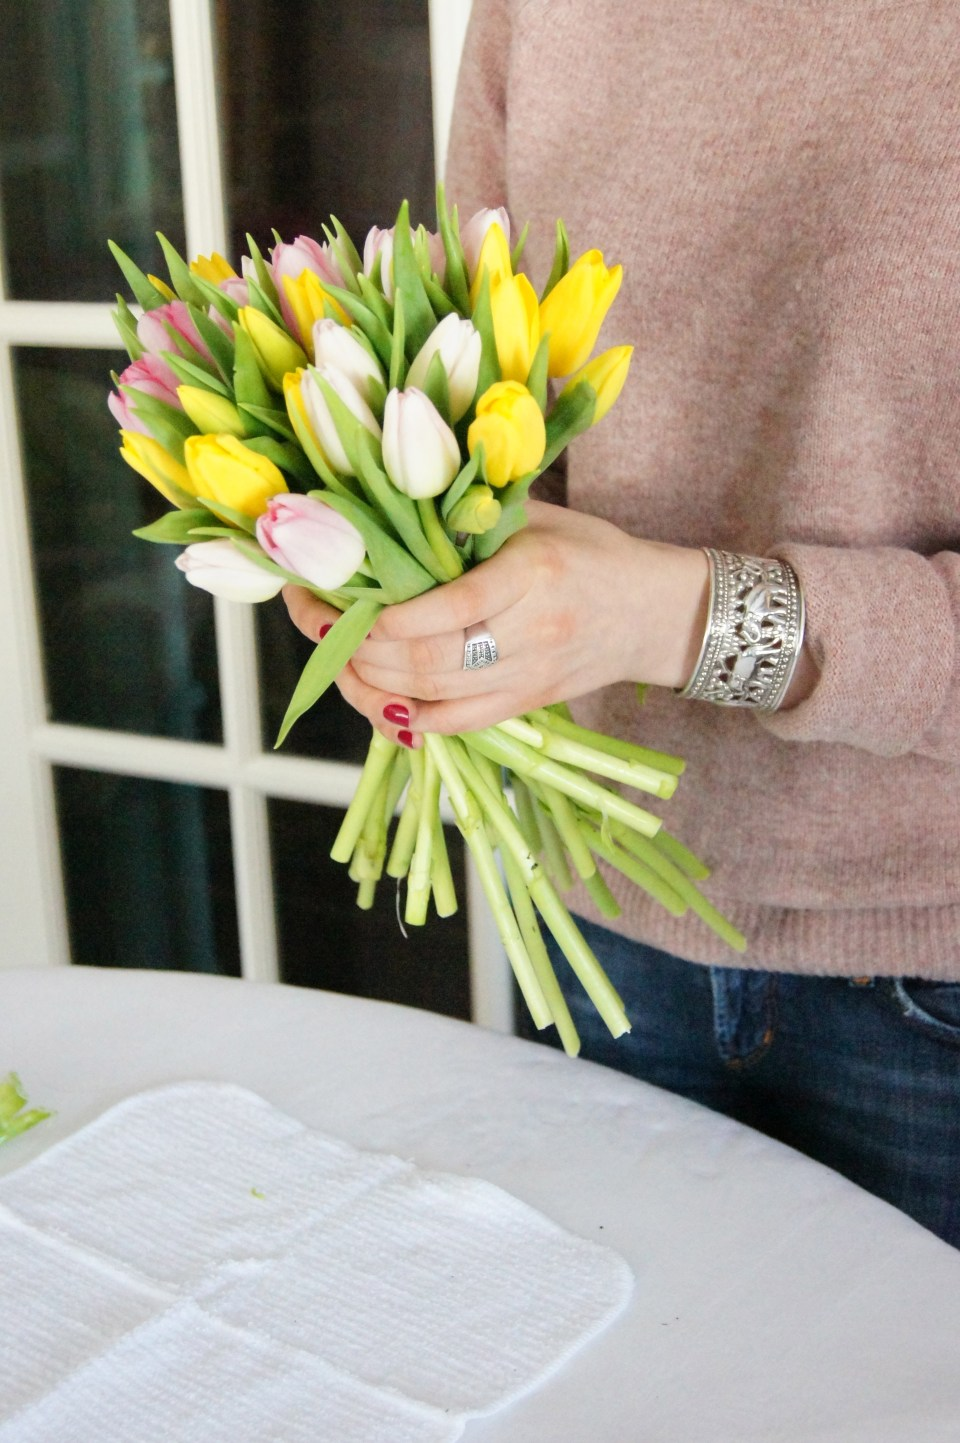 How to Make a Tulip Arrangement